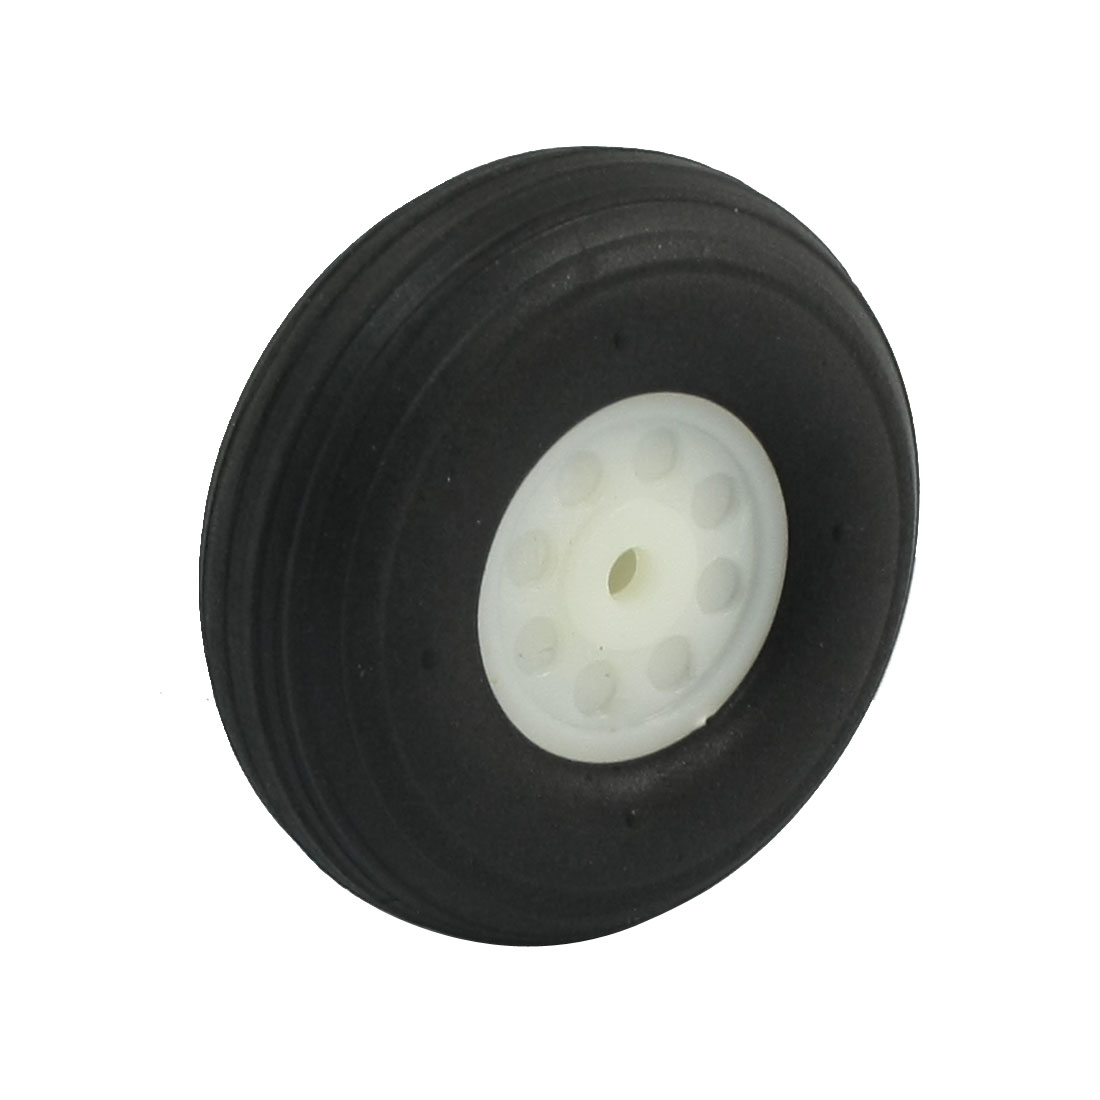 "DIY RC Airplane Plastic Hub 1.5"" Diameter Foam Tire PU Wheel"